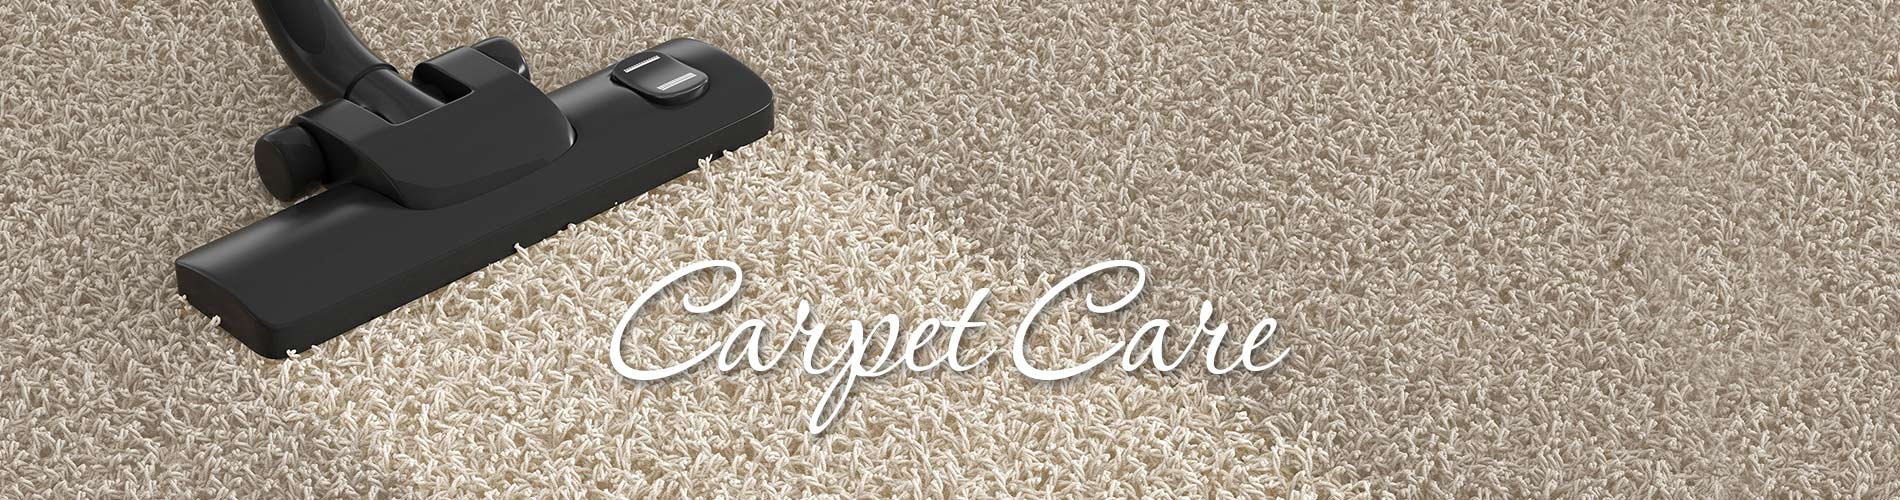 Carpet Care - Proper Care Instructions